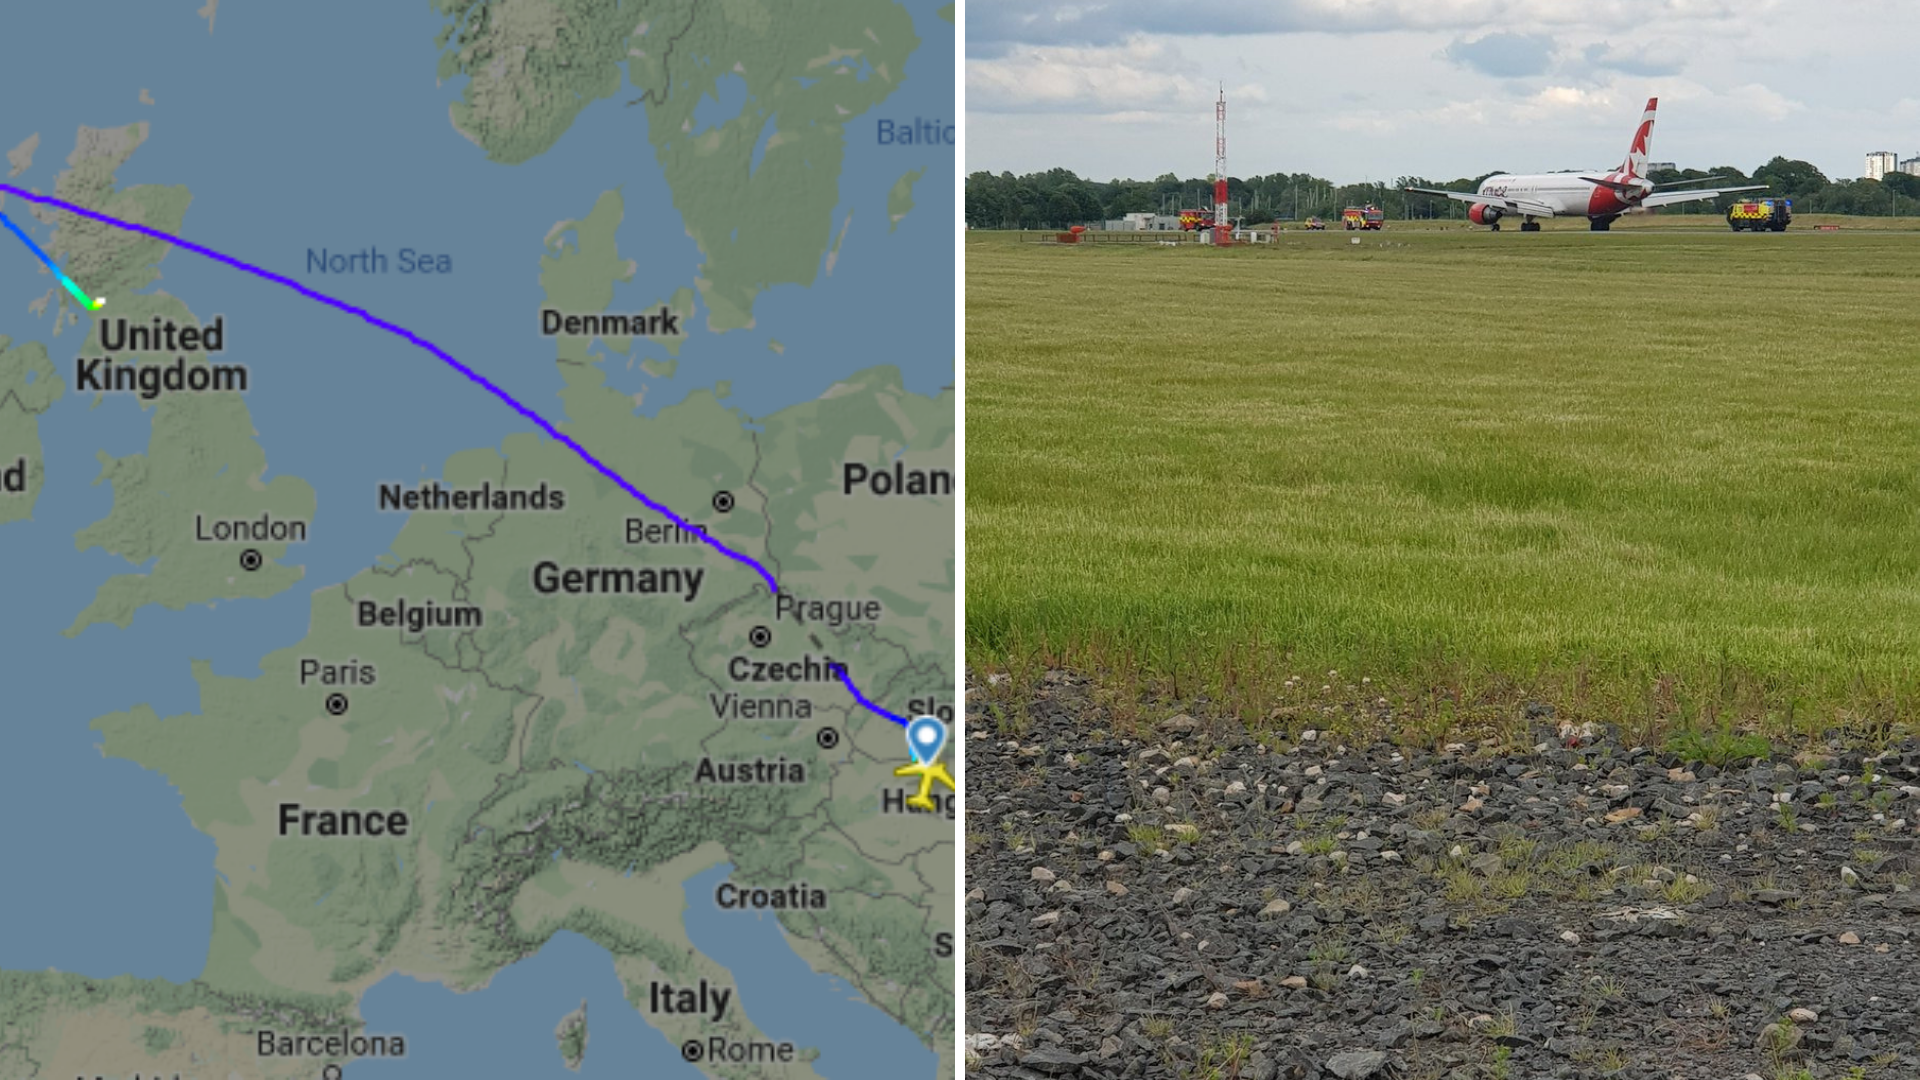 Budapest to Toronto flight forced to land at Glasgow Airport after 'onboard emergency'